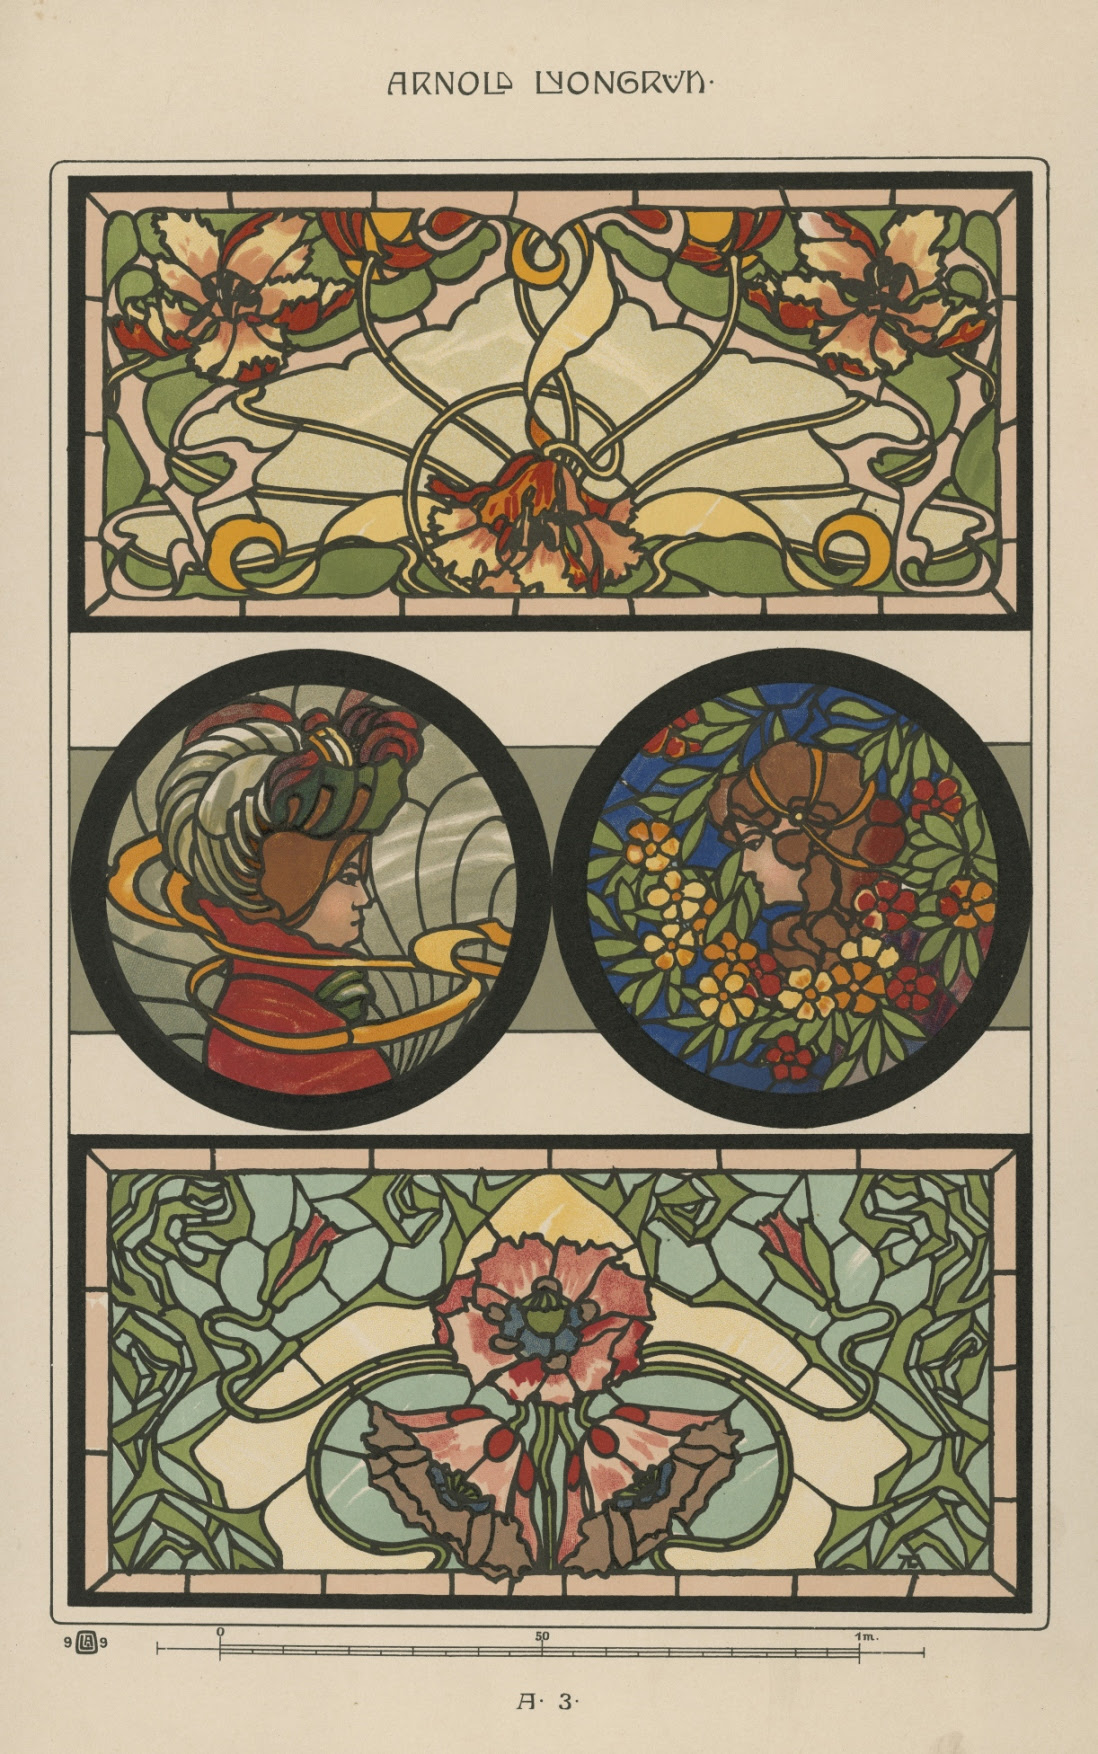 Design for stained glass in Art Nouveau style (Lyongrun plate A 3), from: Arnold Lyongrun, Berlin 1900